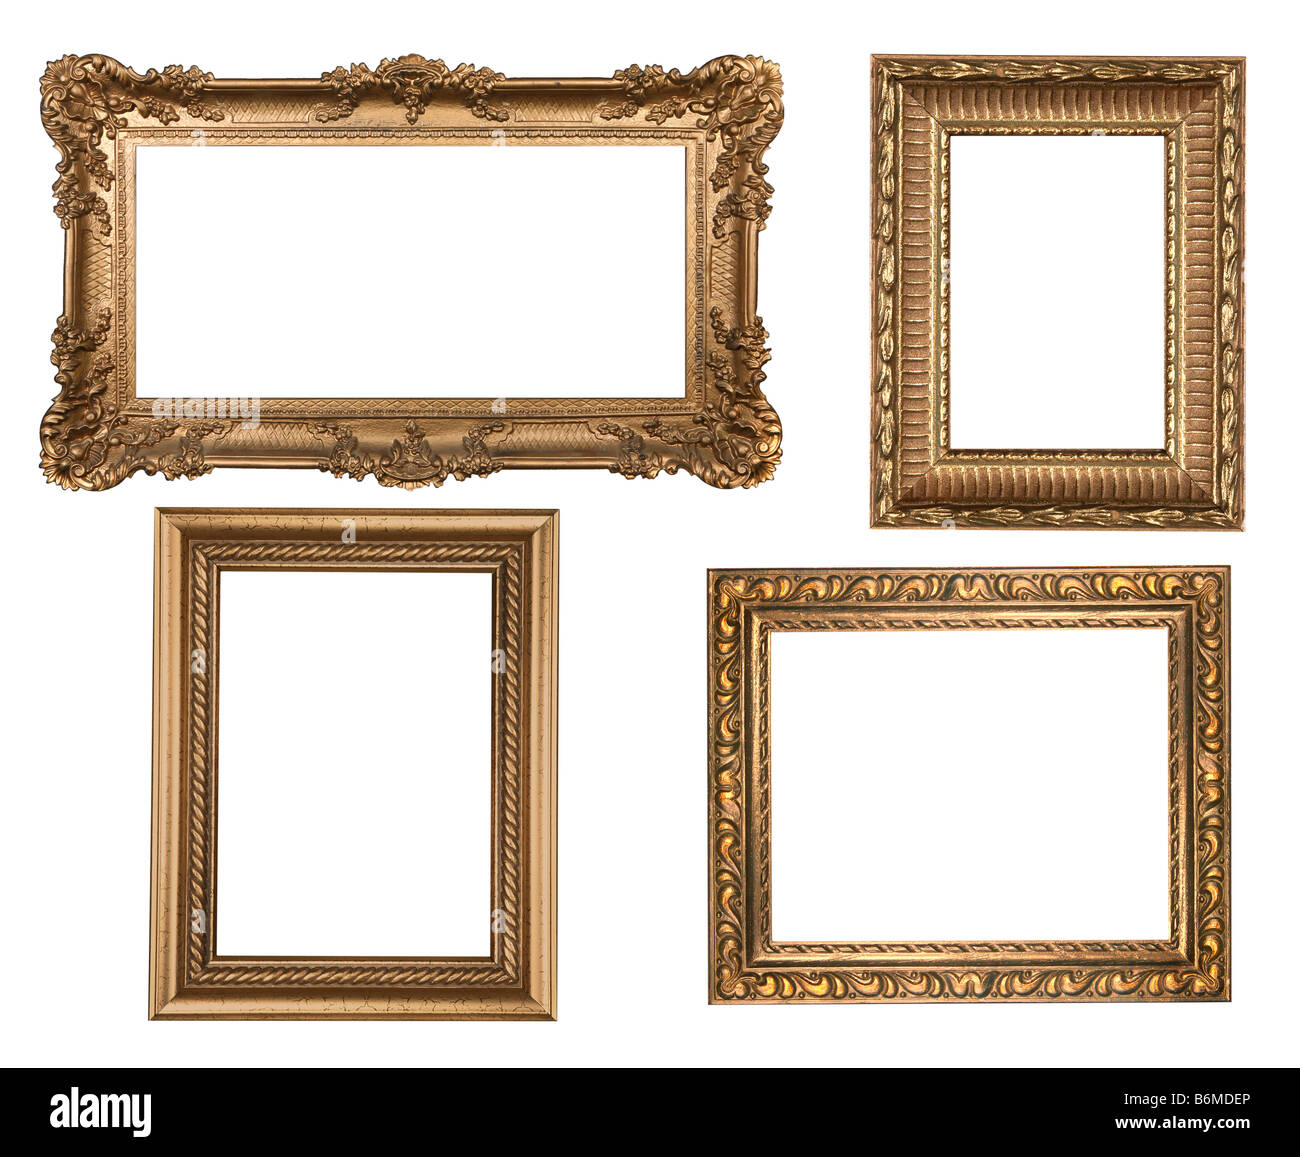 Decorative Gold Empty Wall Picture Frames Insert Your Own Design - Stock Image